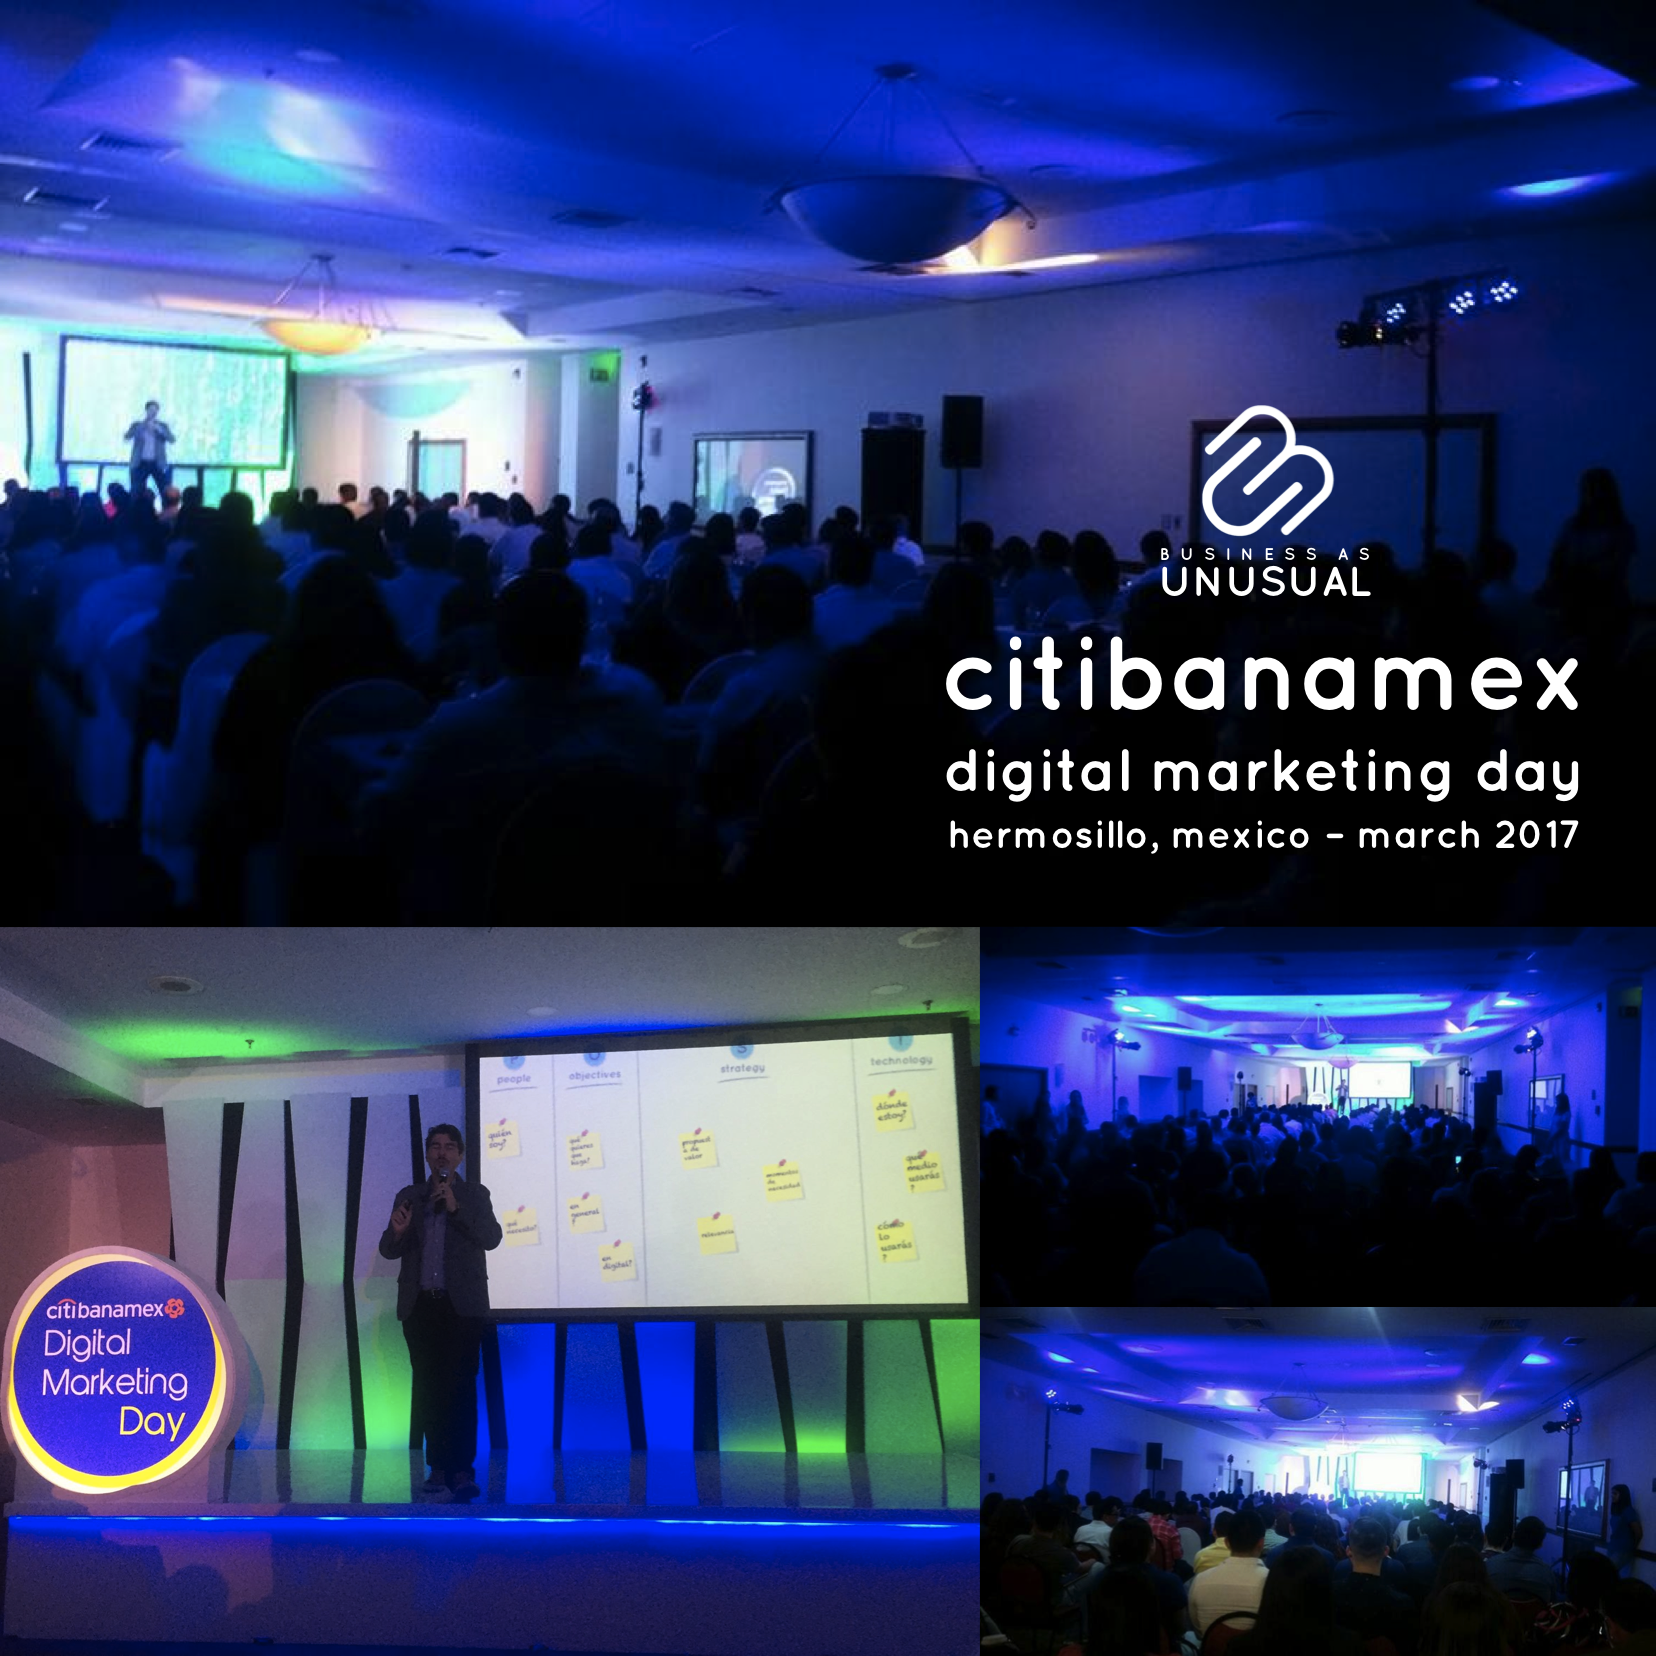 Citibanamex - Digital Marketing Day - Hermosillo